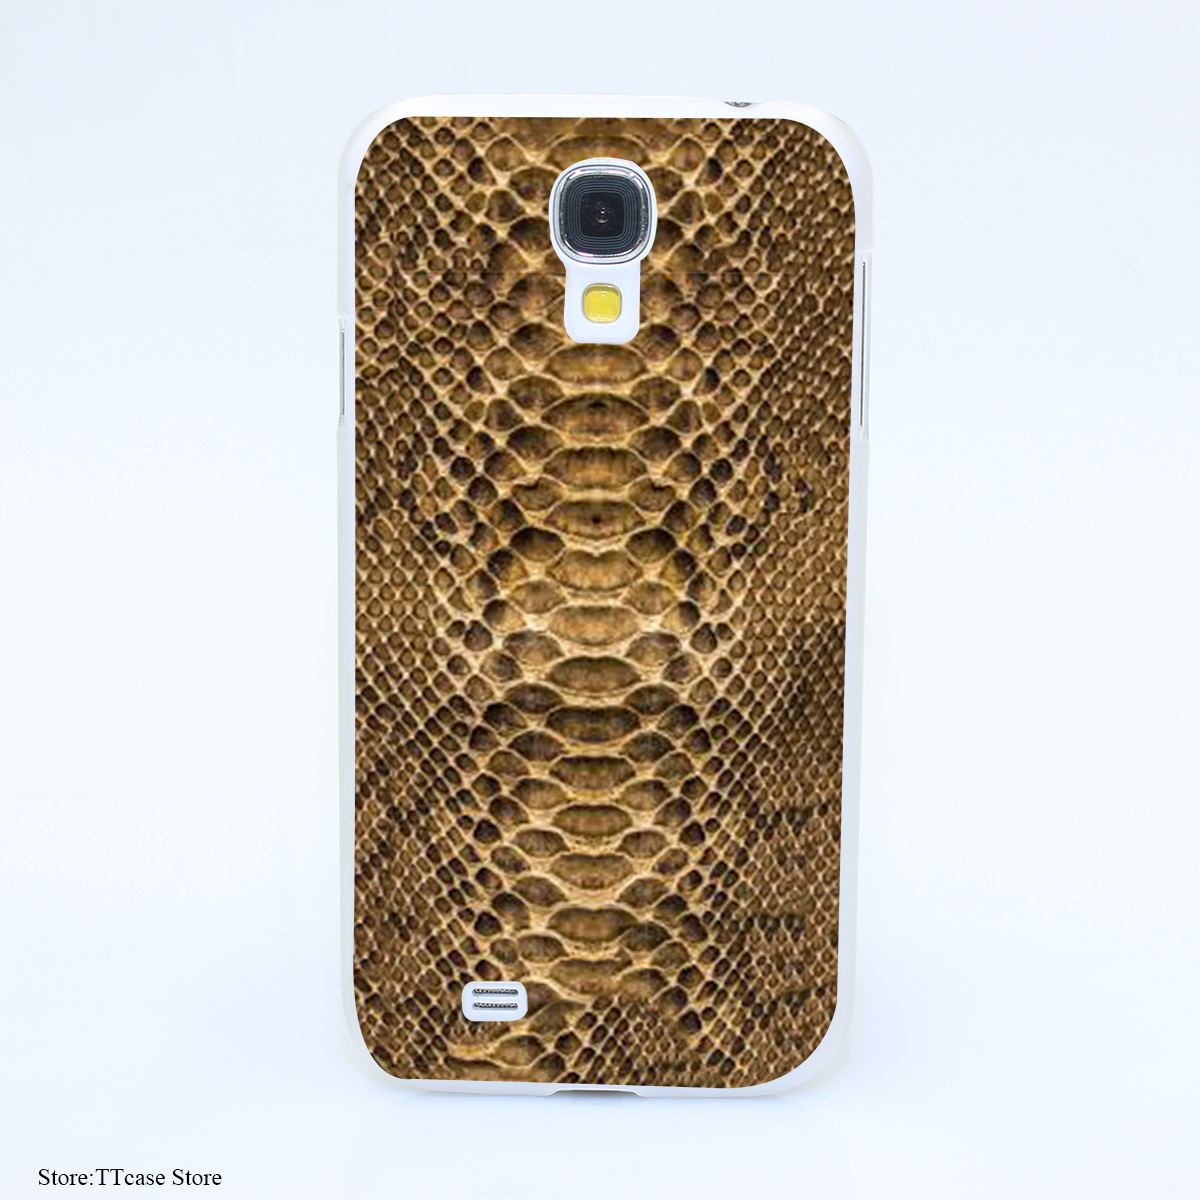 2168CA Luxury Just Cavallis Snake Print Hard Transparent cheap font b Case b font Cover for